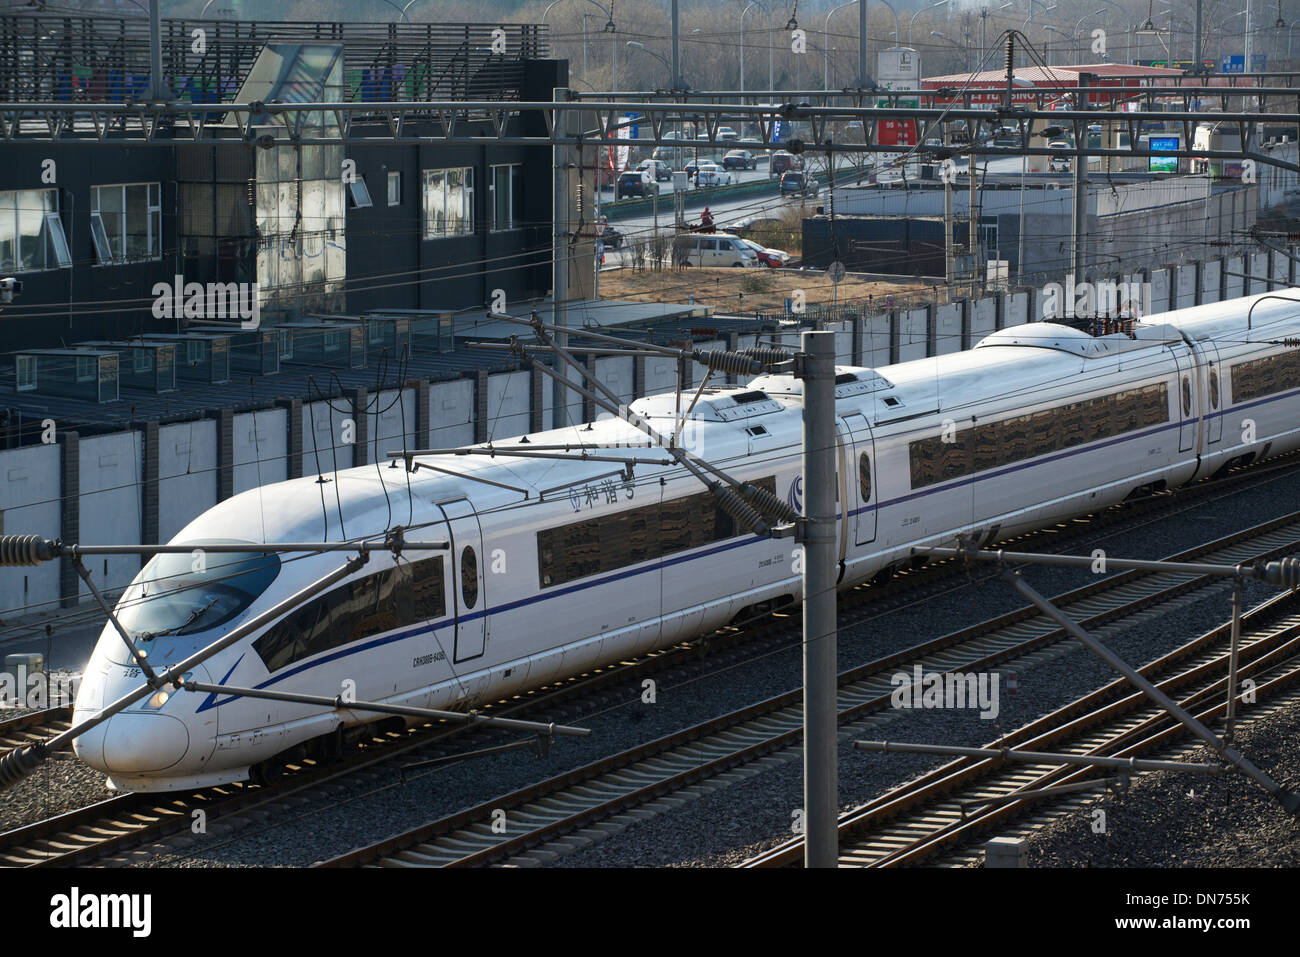 A HSR train is going into Beijing south station in Beijing, China. 15-Dec-2013 - Stock Image